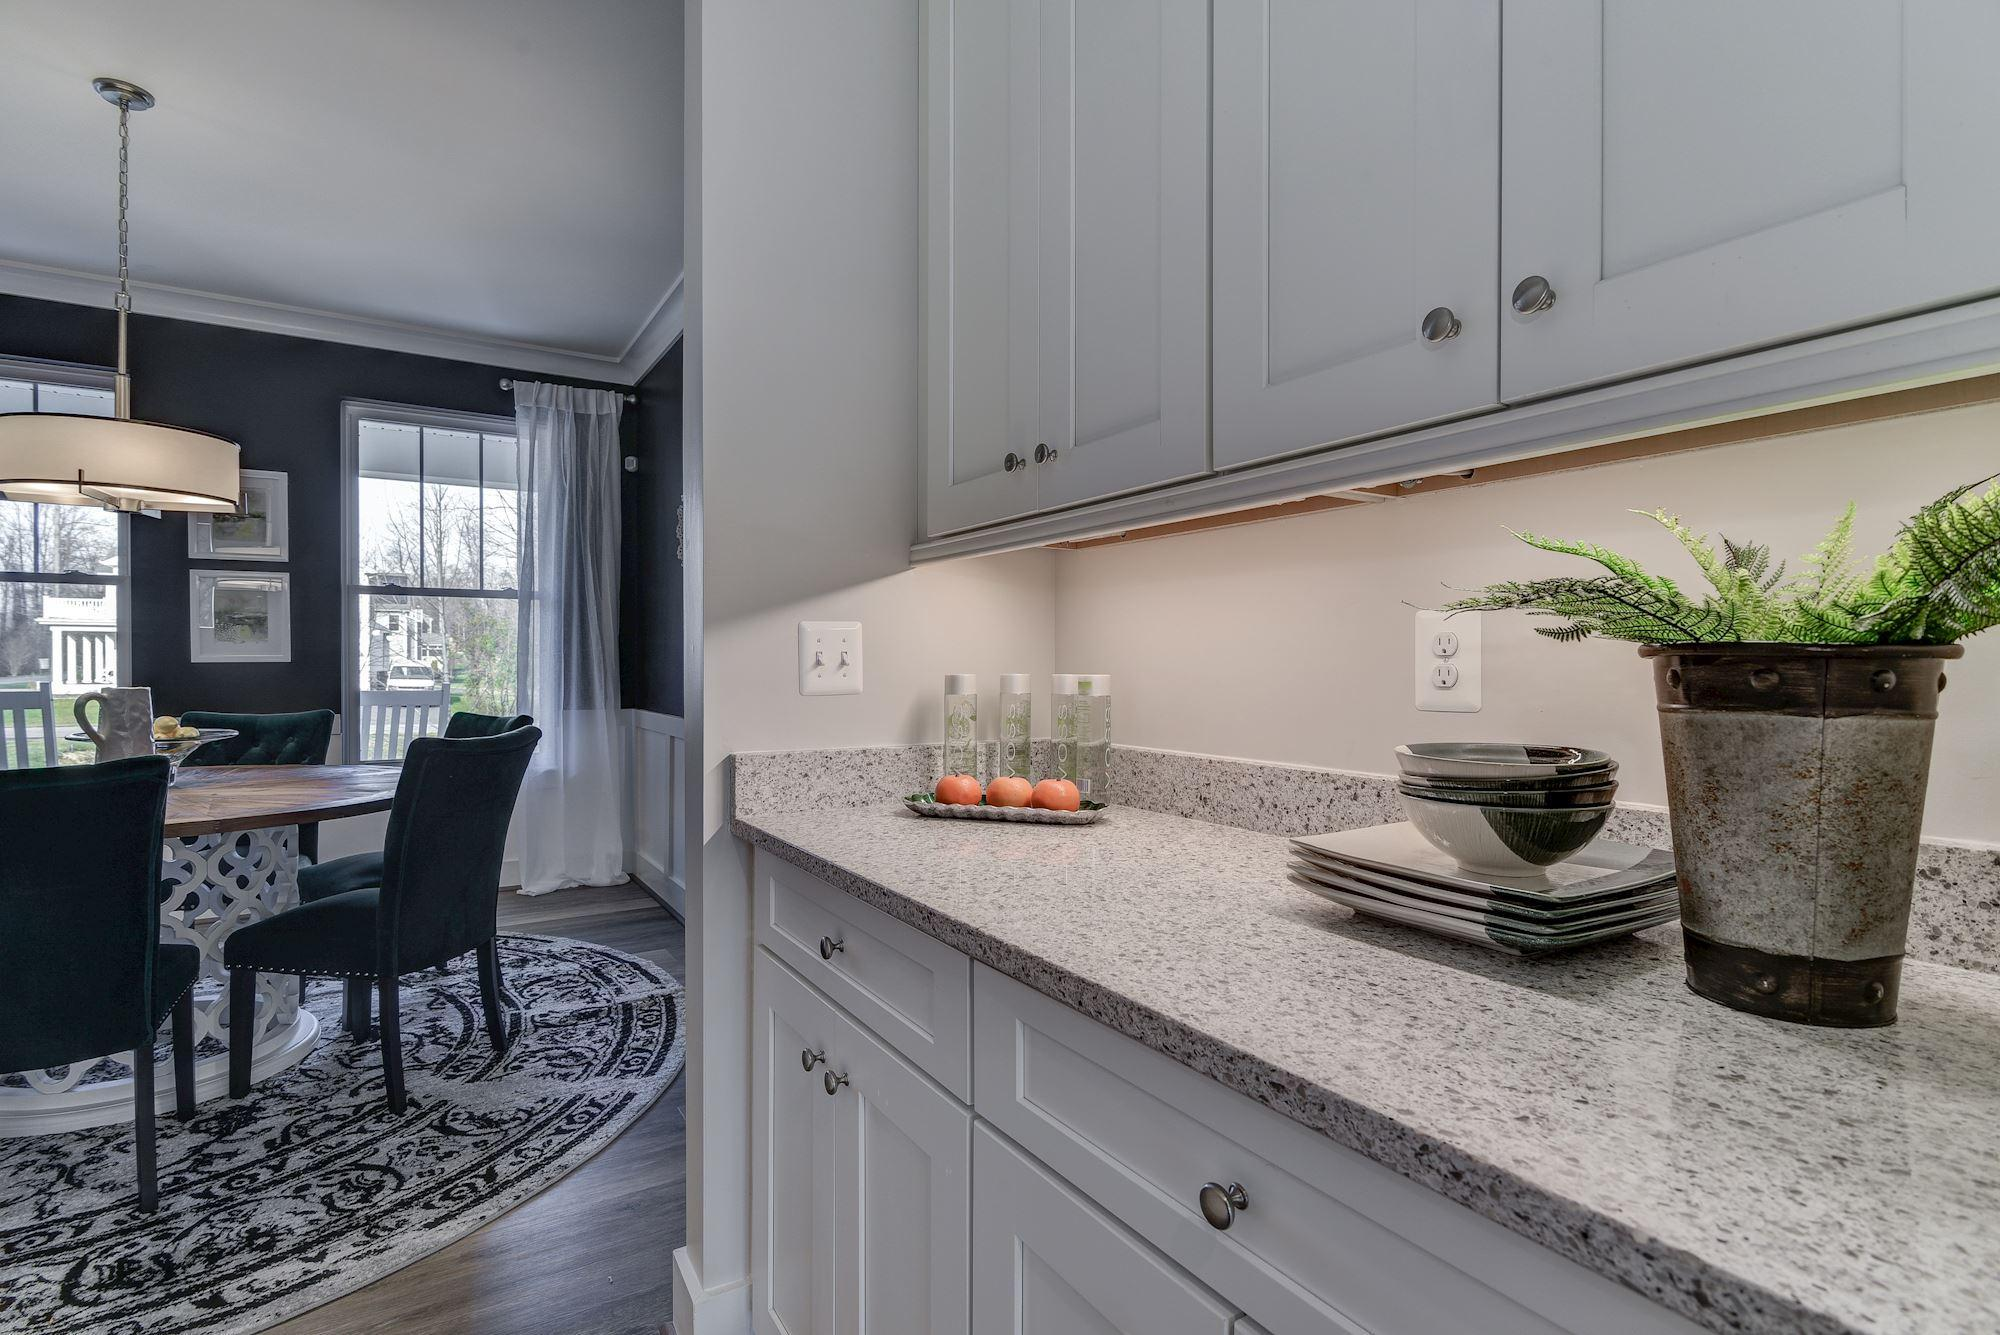 'The Preserve at Severn Run' by Baldwin Homes Inc2 in Baltimore